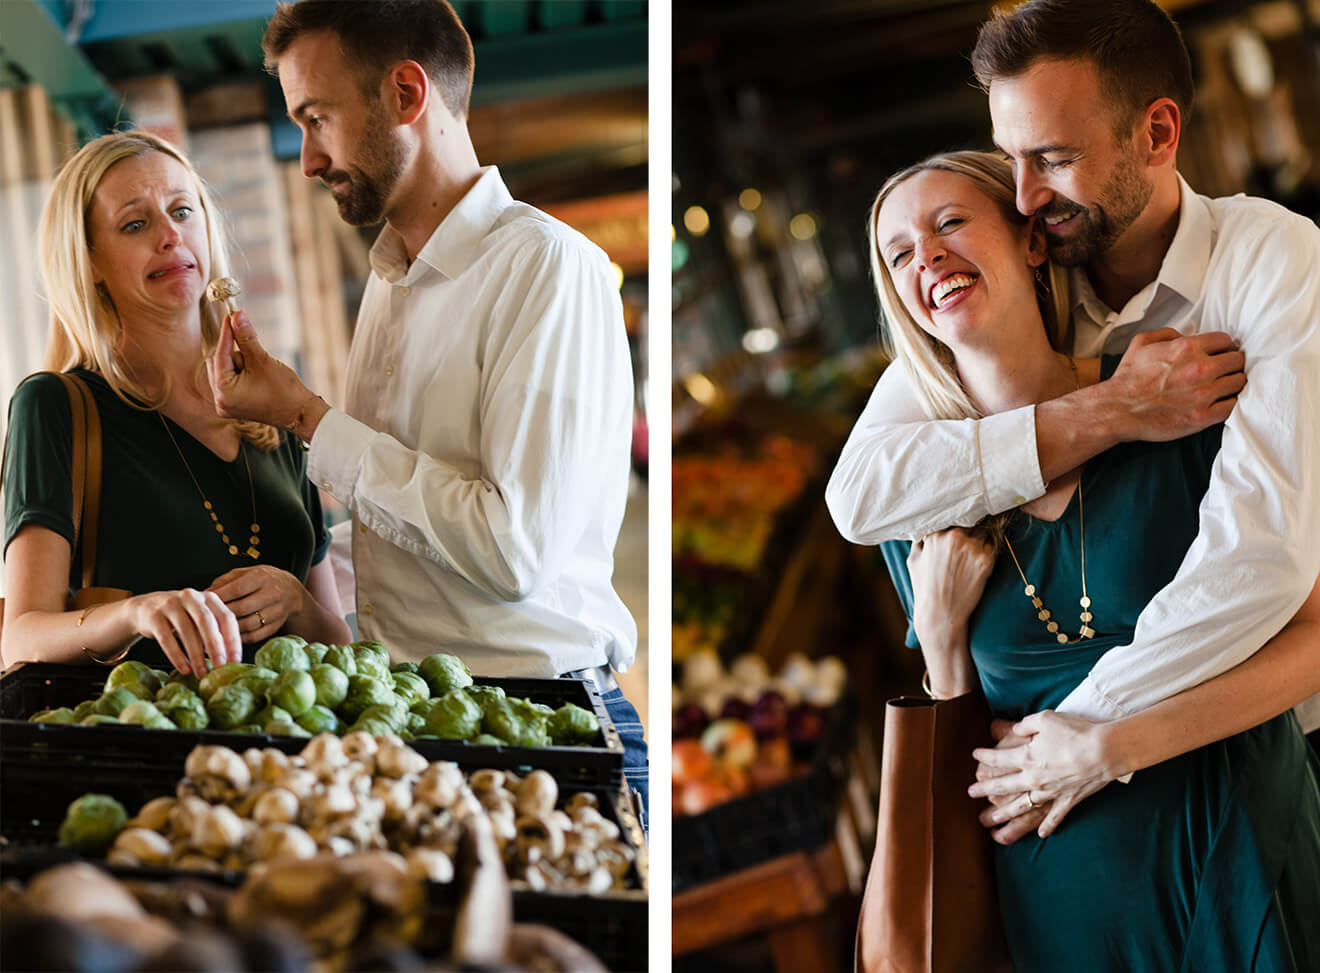 Barclay and Ali Martin Engagement Pictures in Kansas City (by Becca Spears Photography)